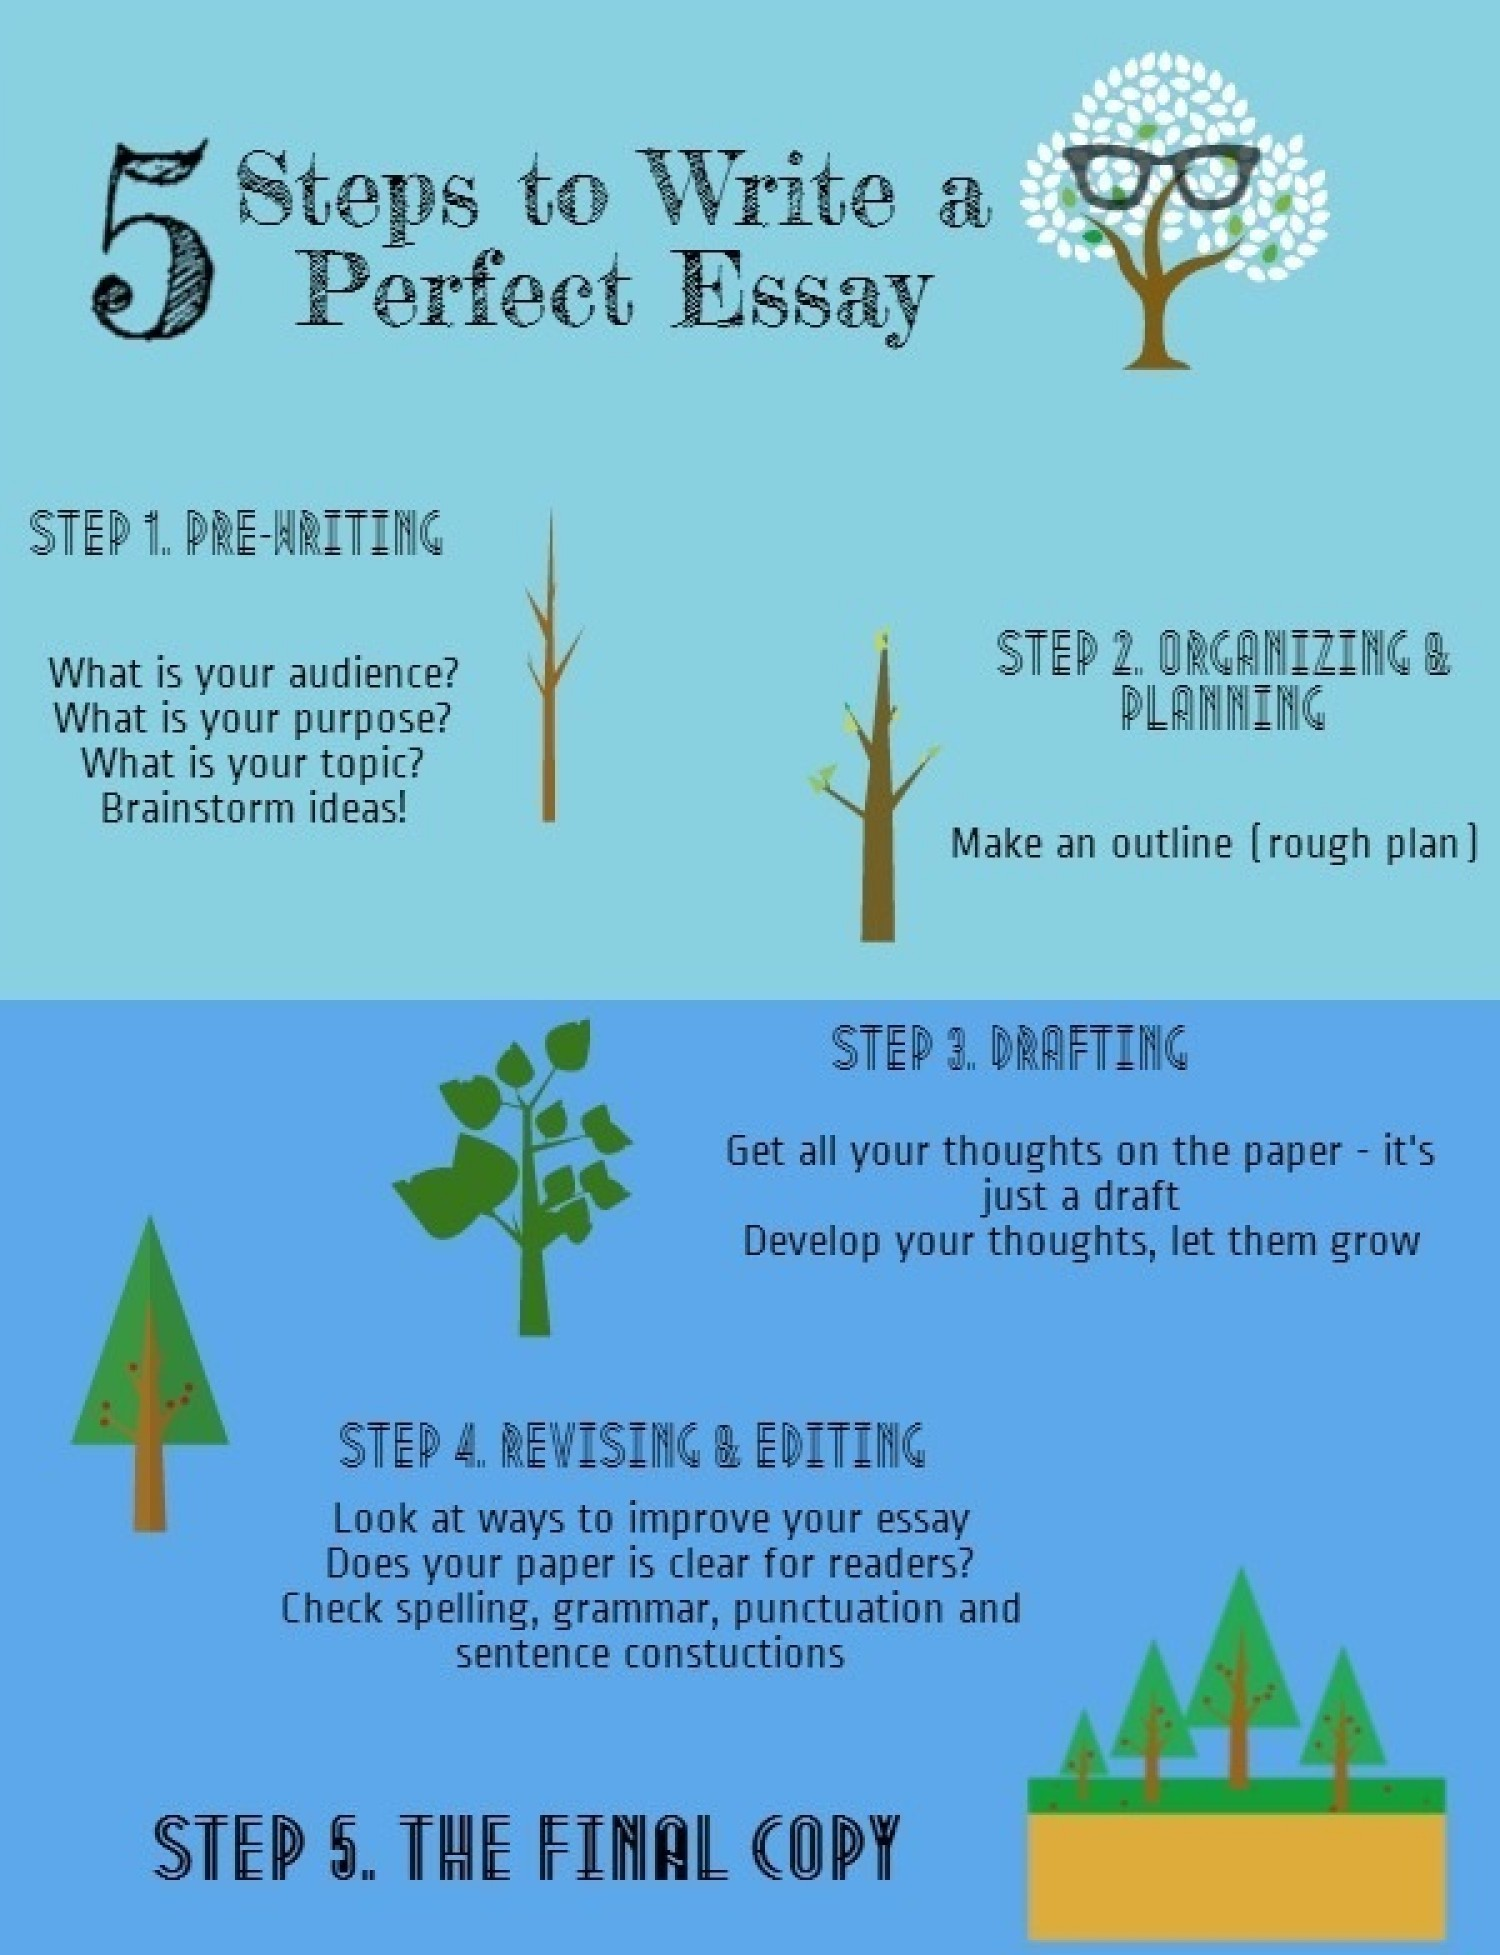 003 Steps To Write An Essay Perfect 547da311ad70a W1500 Staggering In Telugu Mla Format Pdf Full